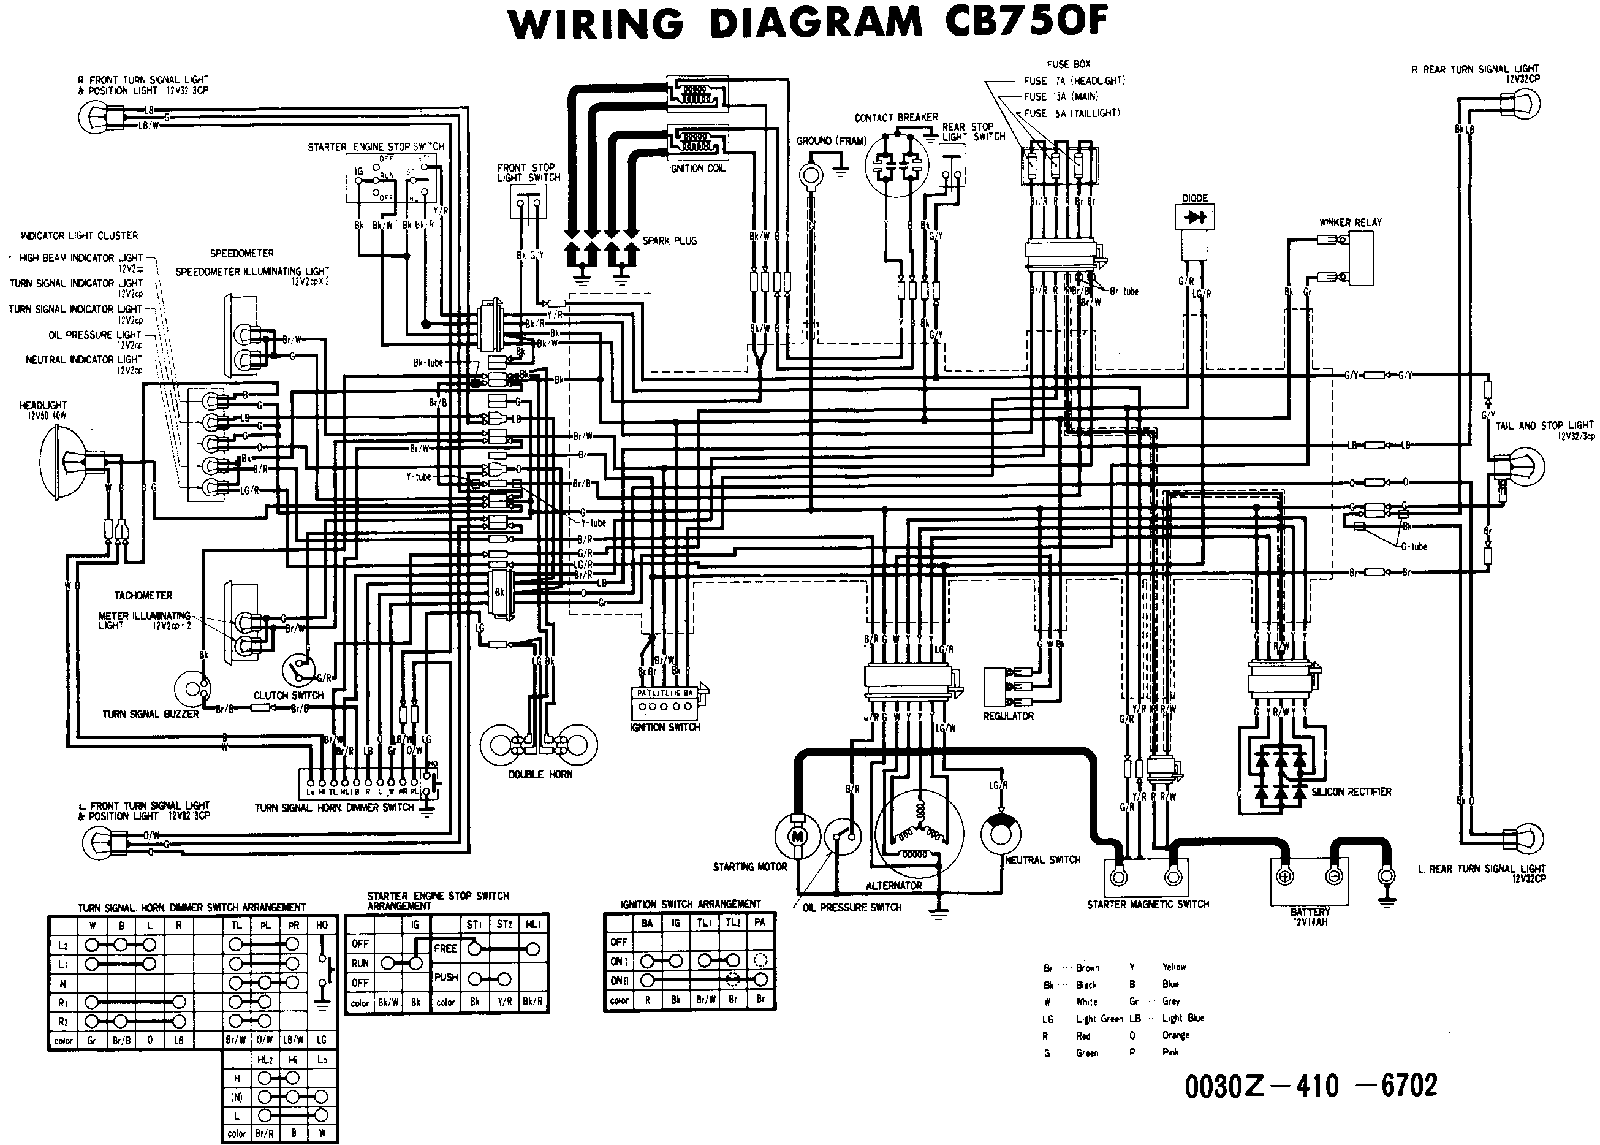 Attachment on Honda Cb 750 Wiring Diagram